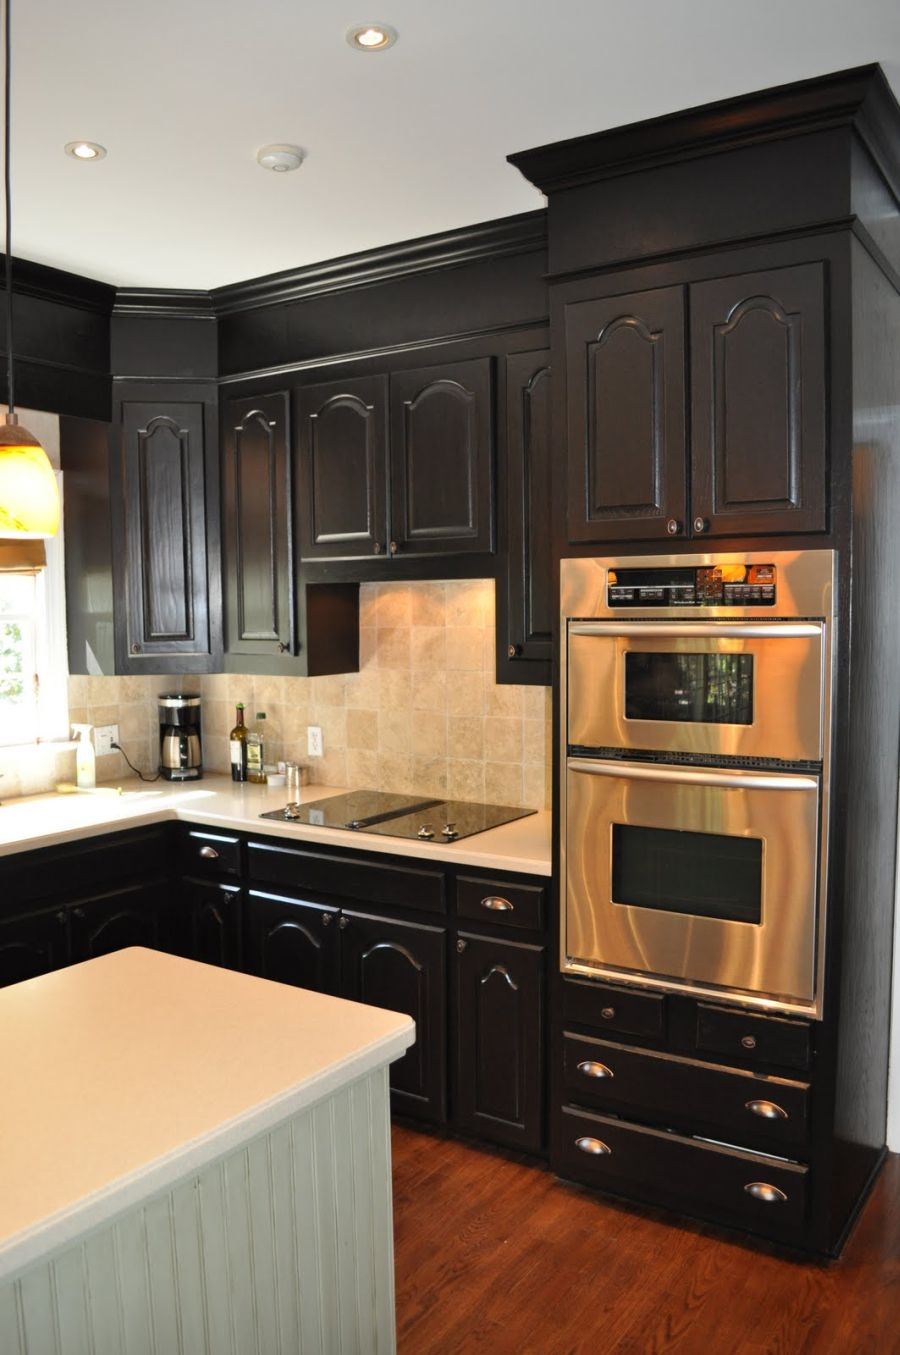 Green Kitchen Cabinets With Two Ovens In Wall